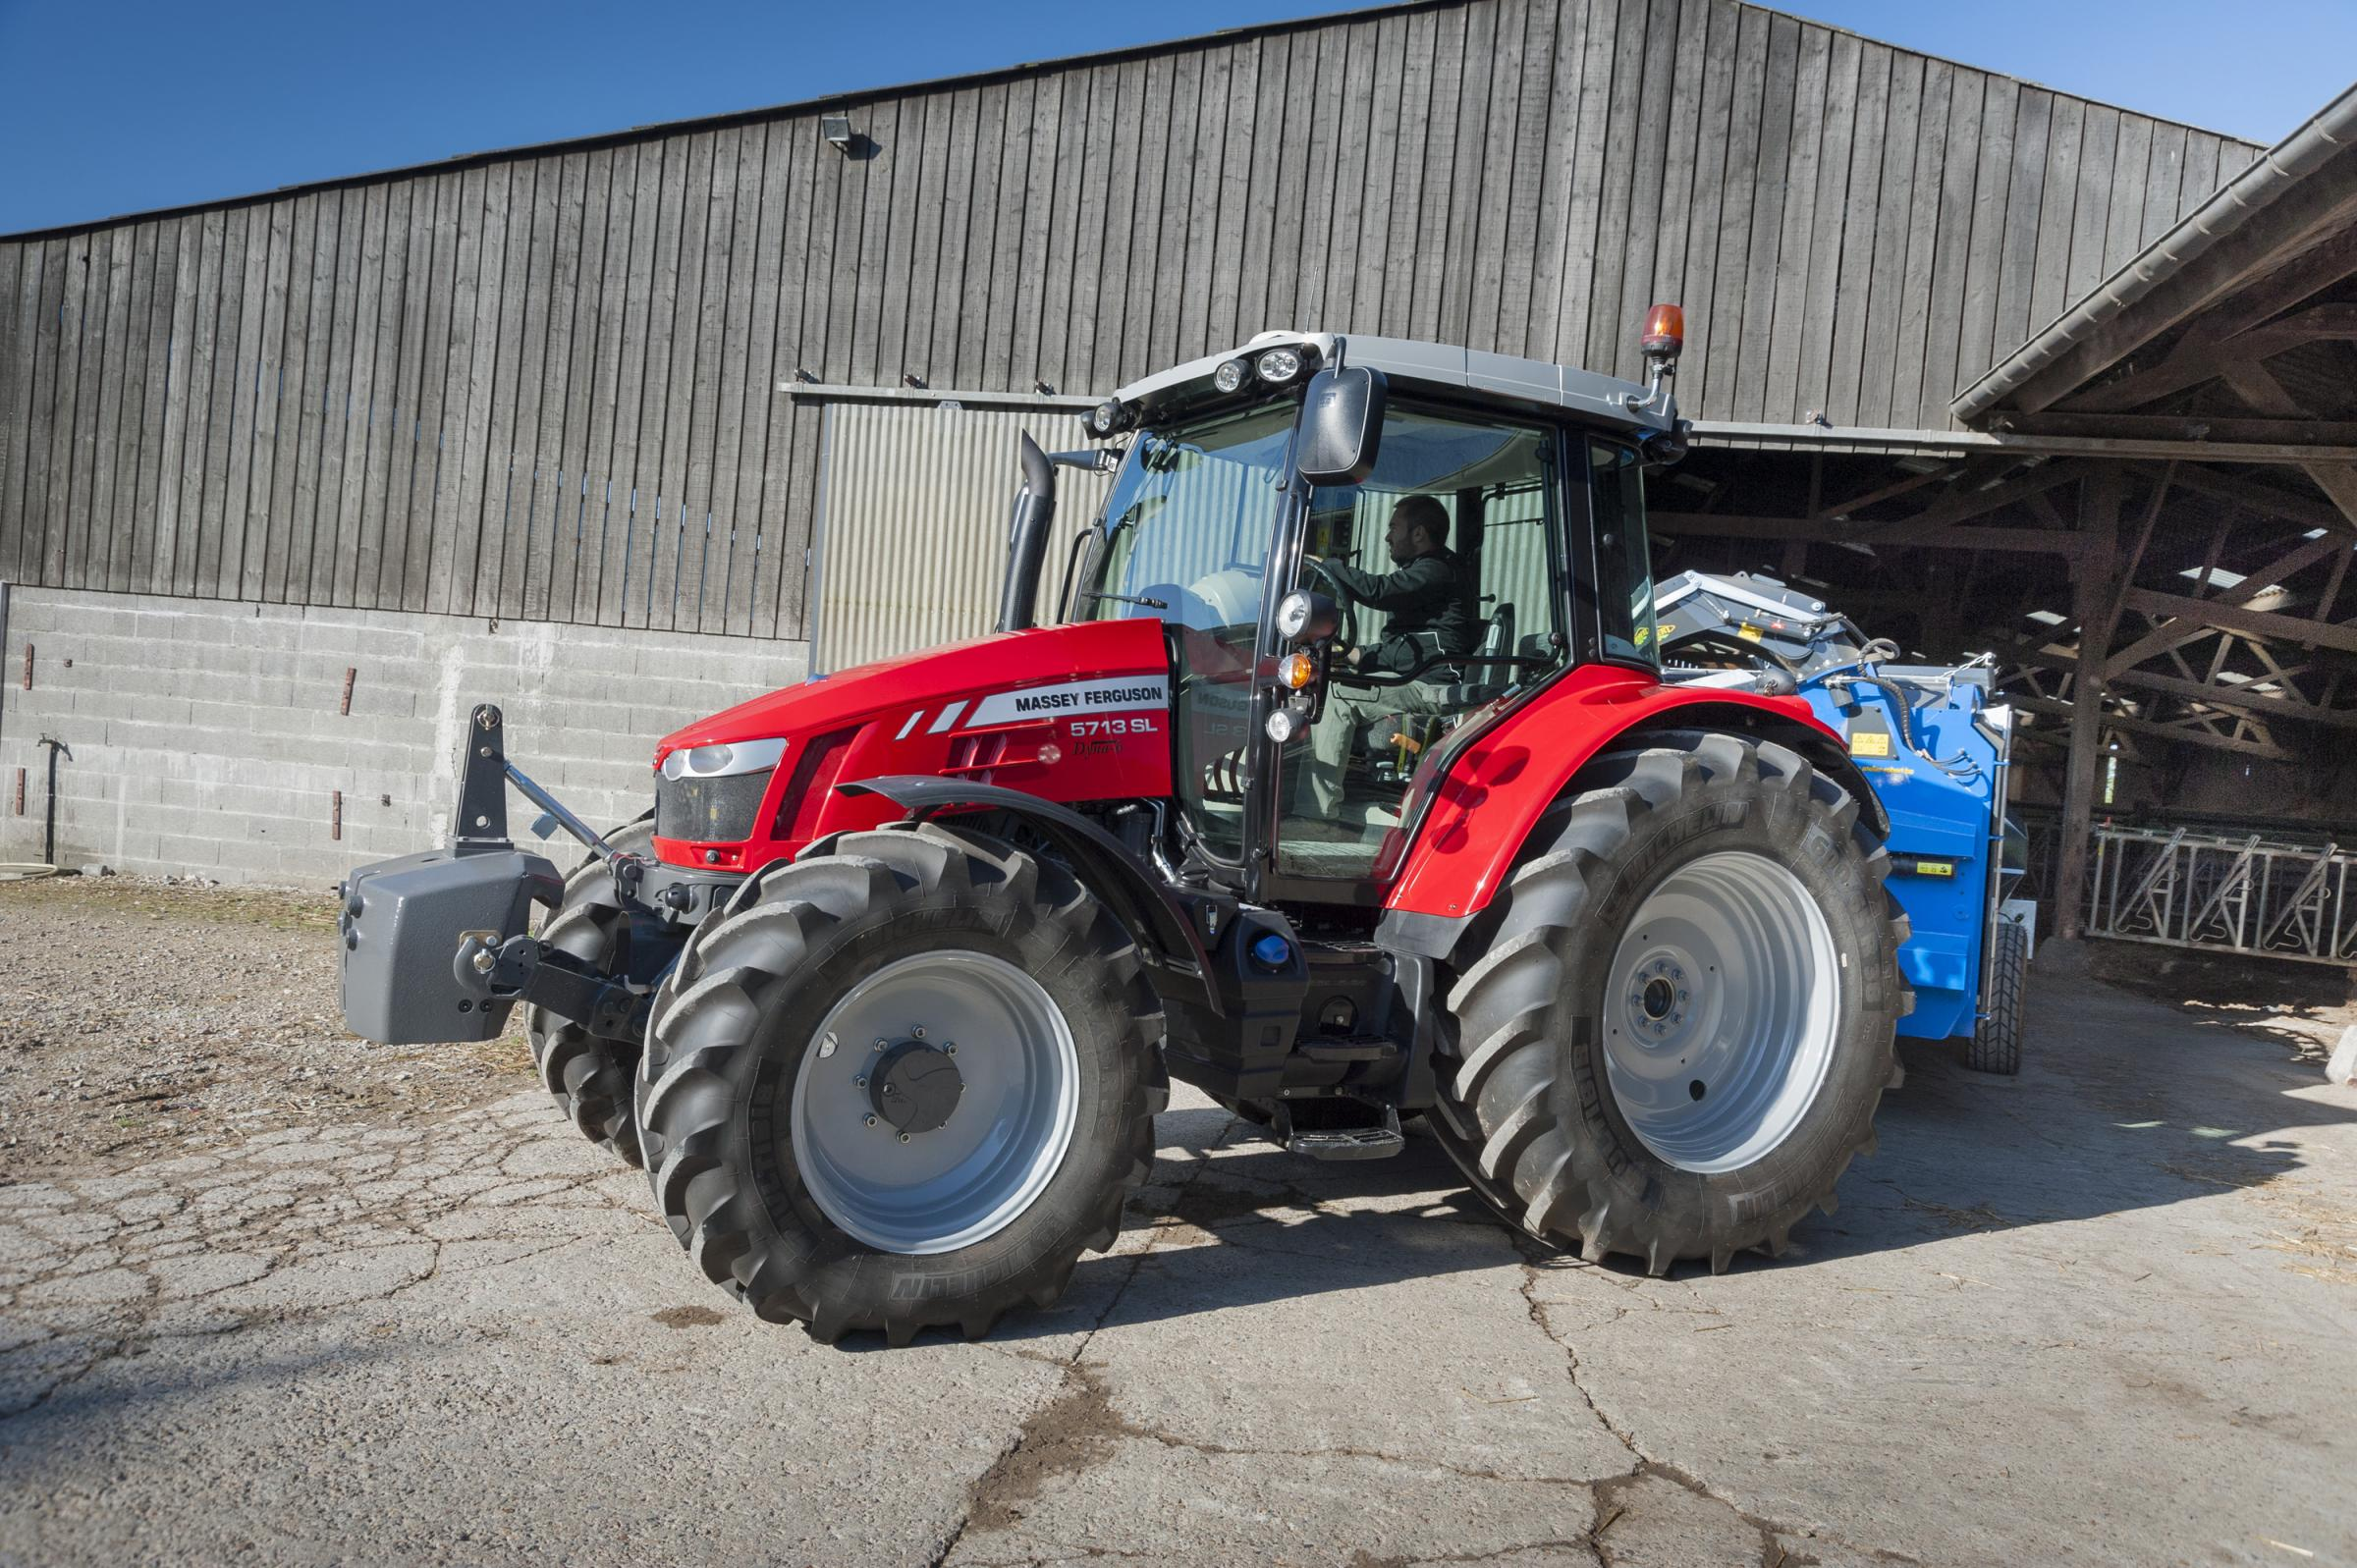 Efficient specification for McCormick X7 Pro Drive tractors includes mechanical spool valves and, on four-cylinder models, gear pump hydraulics with a load-sensing piston pump optional